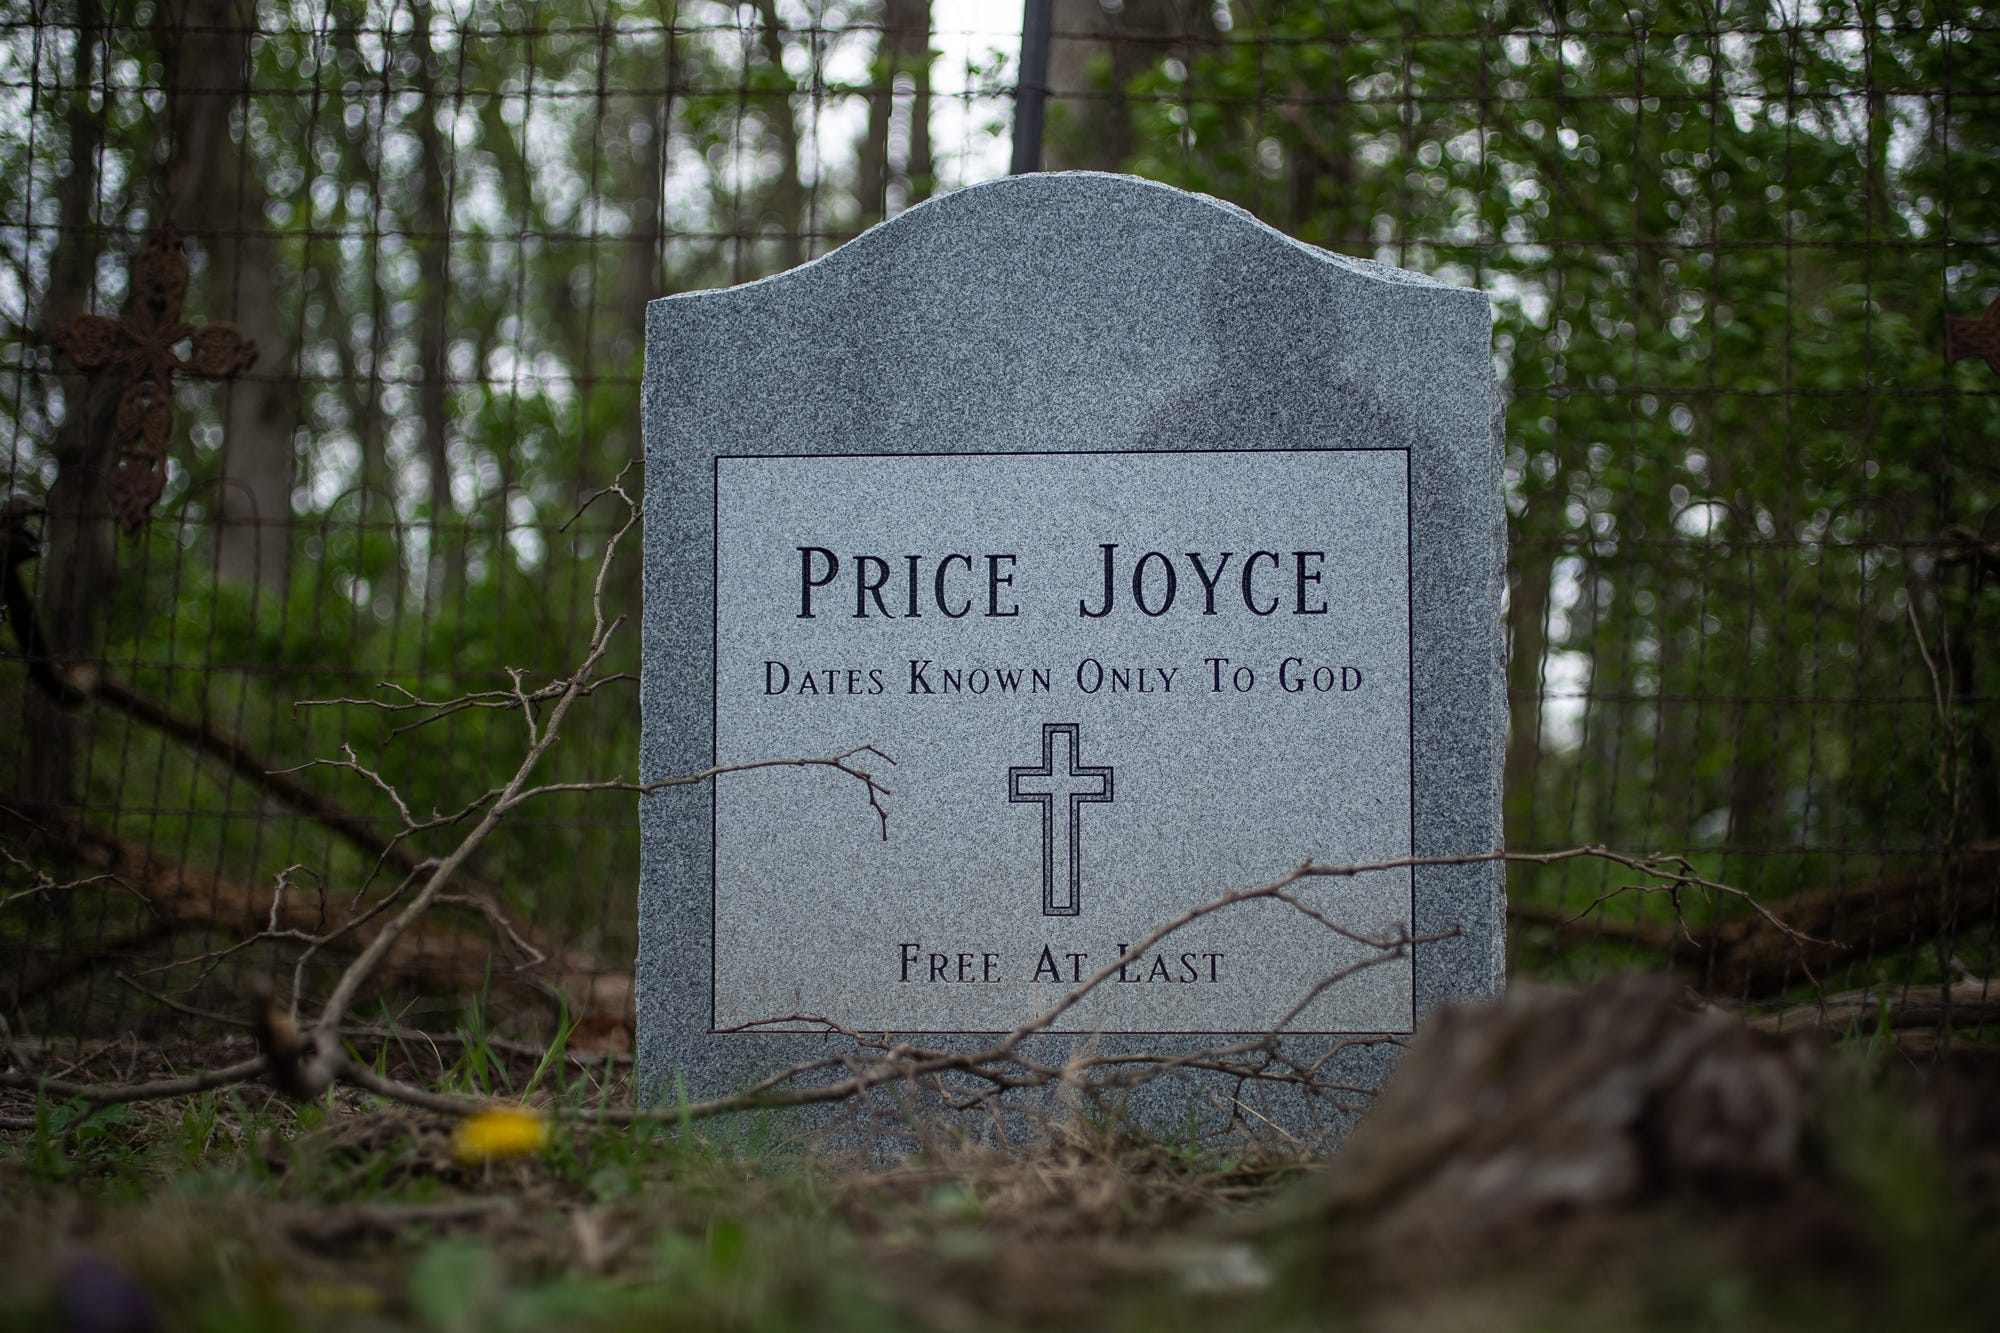 In a forgotten plot in an abandoned Indiana cemetery, a slave is 'freed' at last